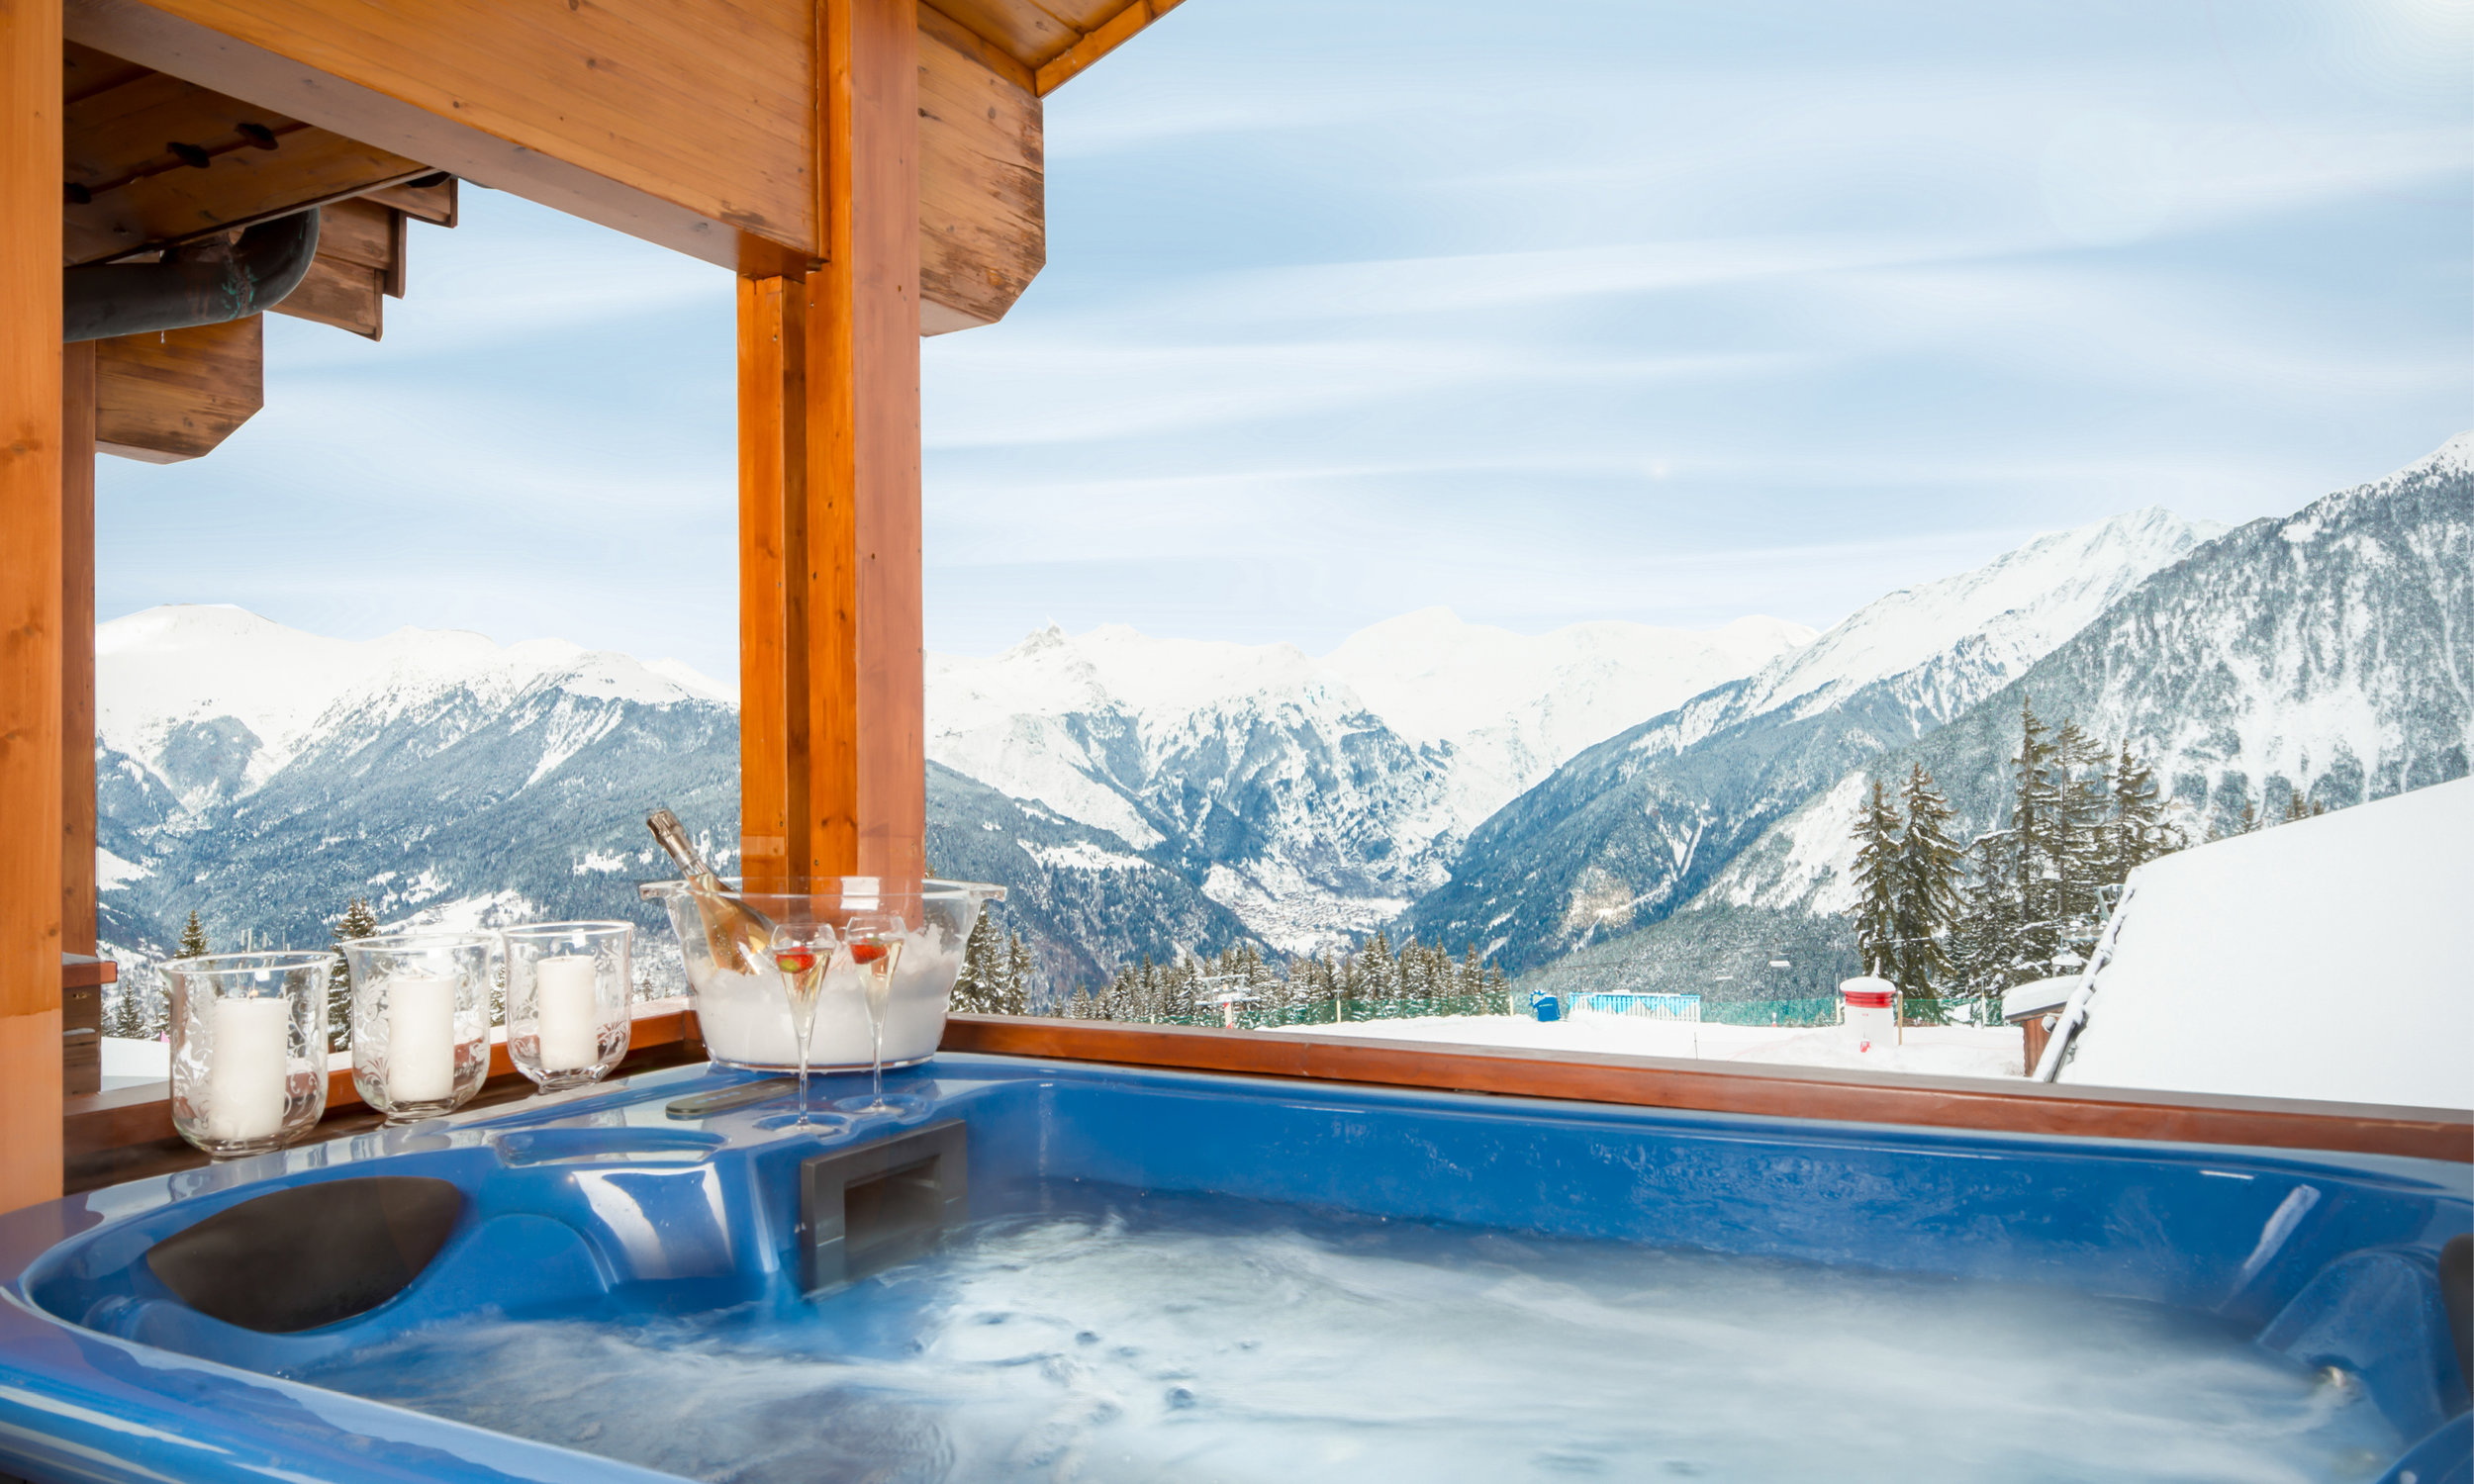 Courchevel Luxury rental relax and recharge